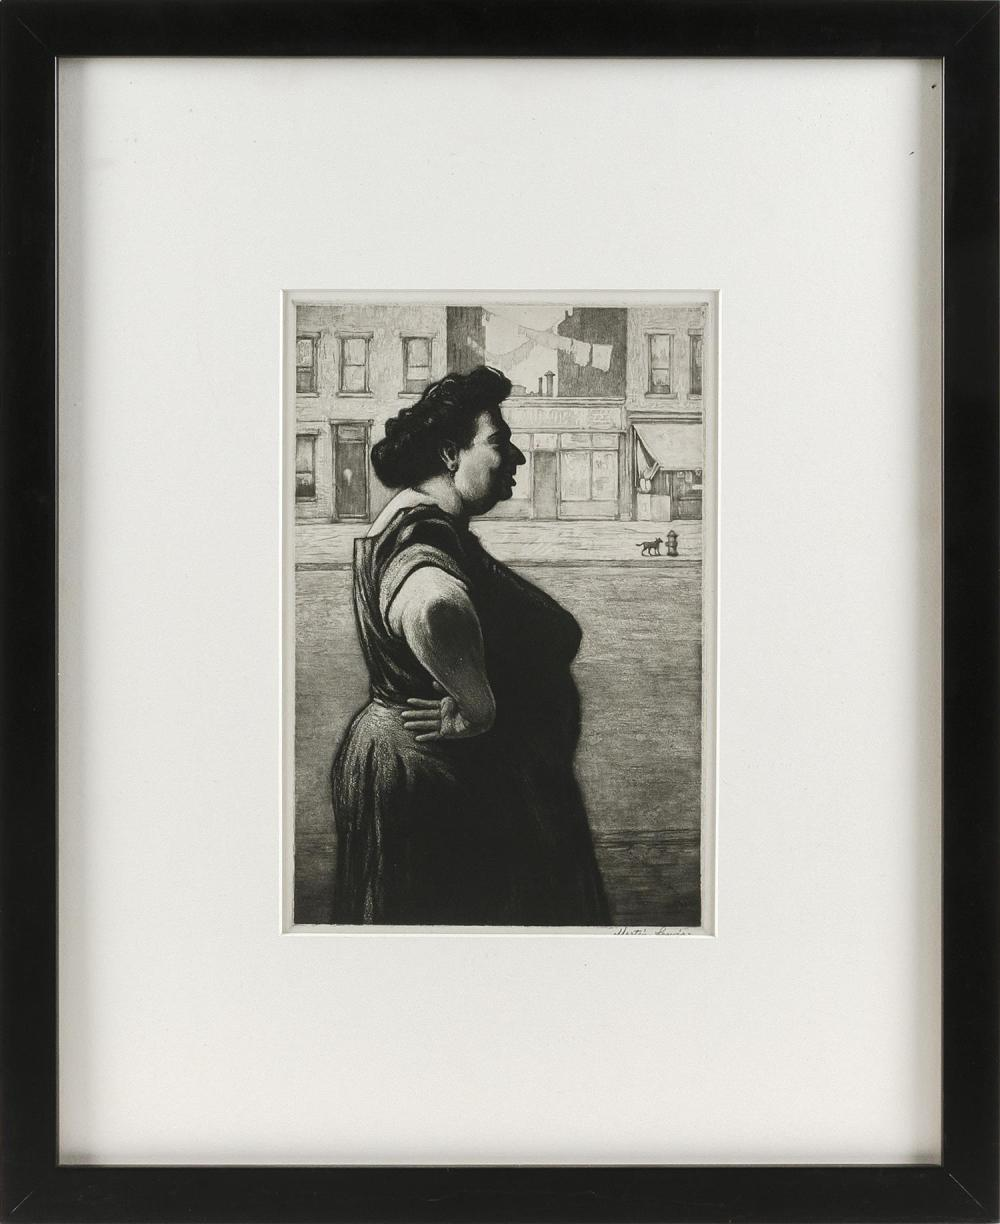 """MARTIN LEWIS, New York/Connecticut/Maine/Australia, 1881-1962, """"Boss of the Block""""., Etching and aquatint on wove paper, 11"""" x 7.5""""..."""